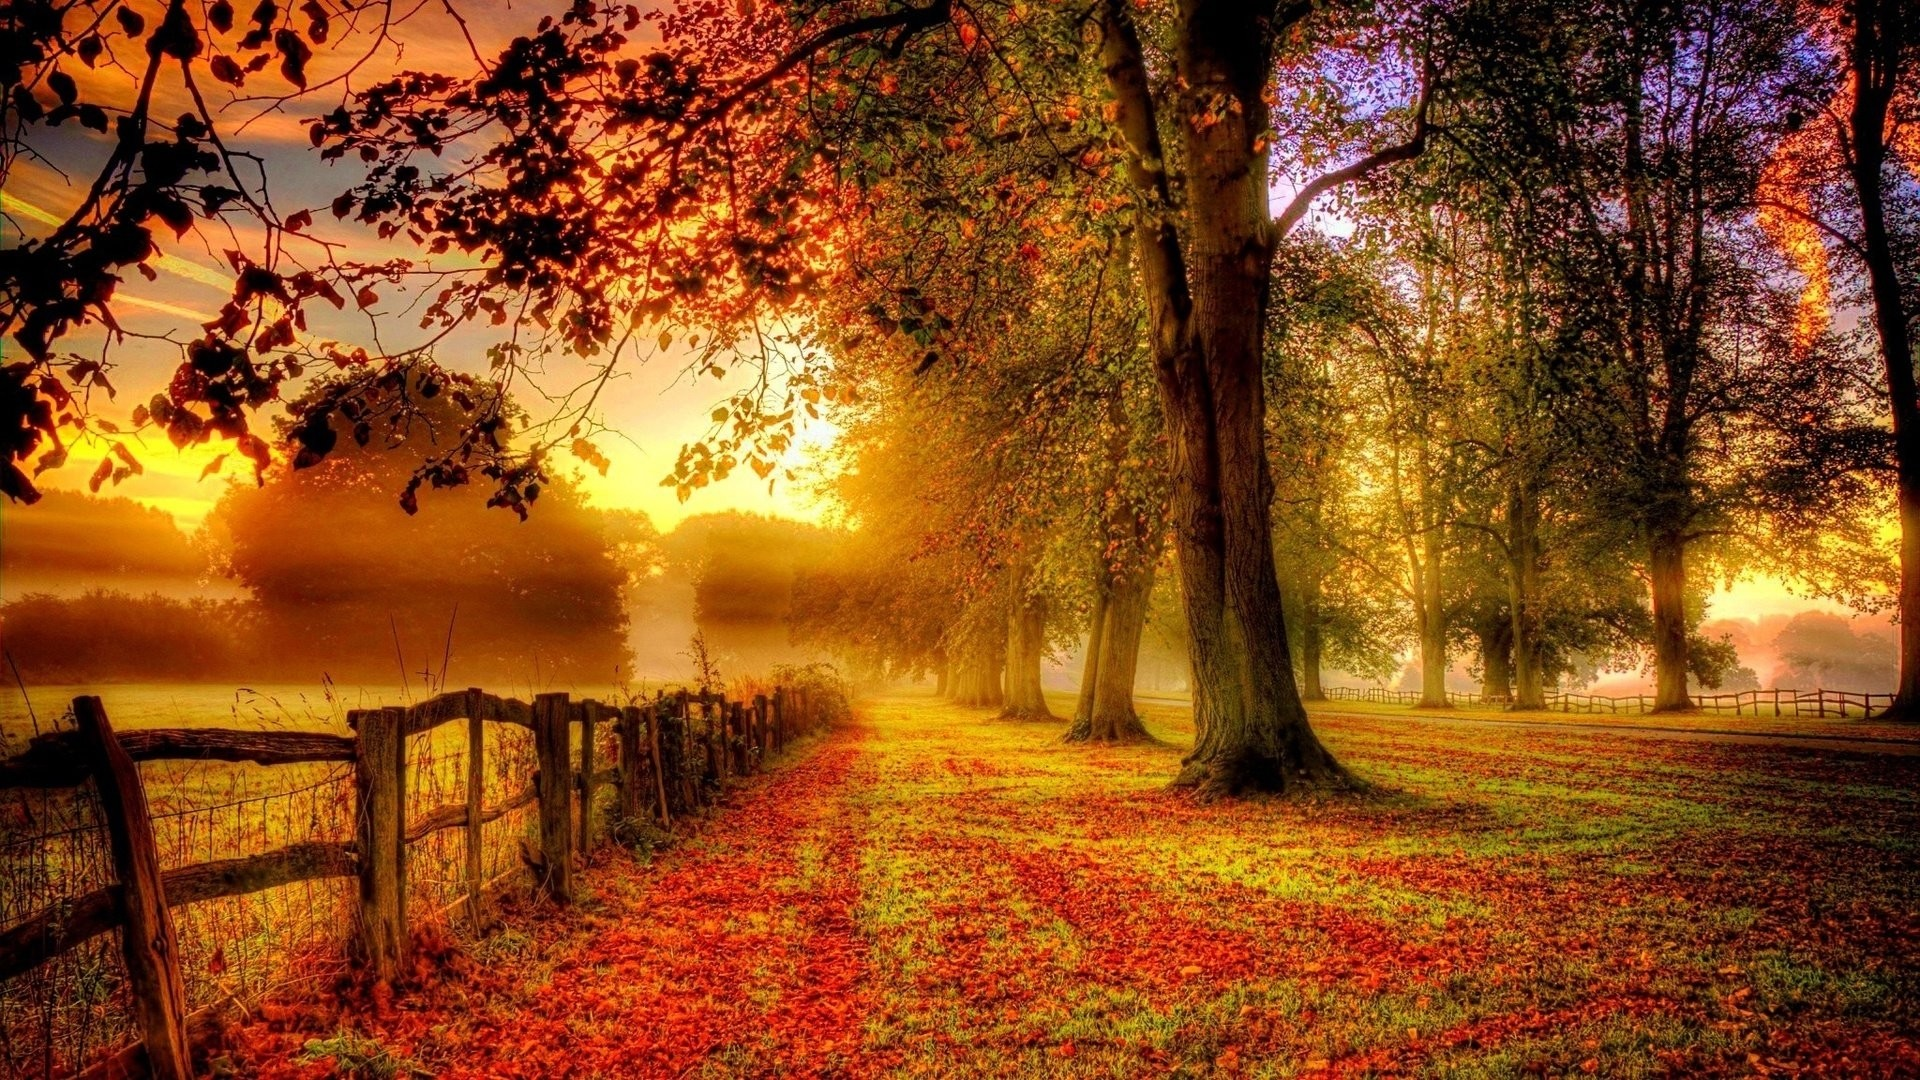 912 Fall Hd Wallpapers   Backgrounds – Wallpaper Abyss pertaining to Fall  Wallpaper